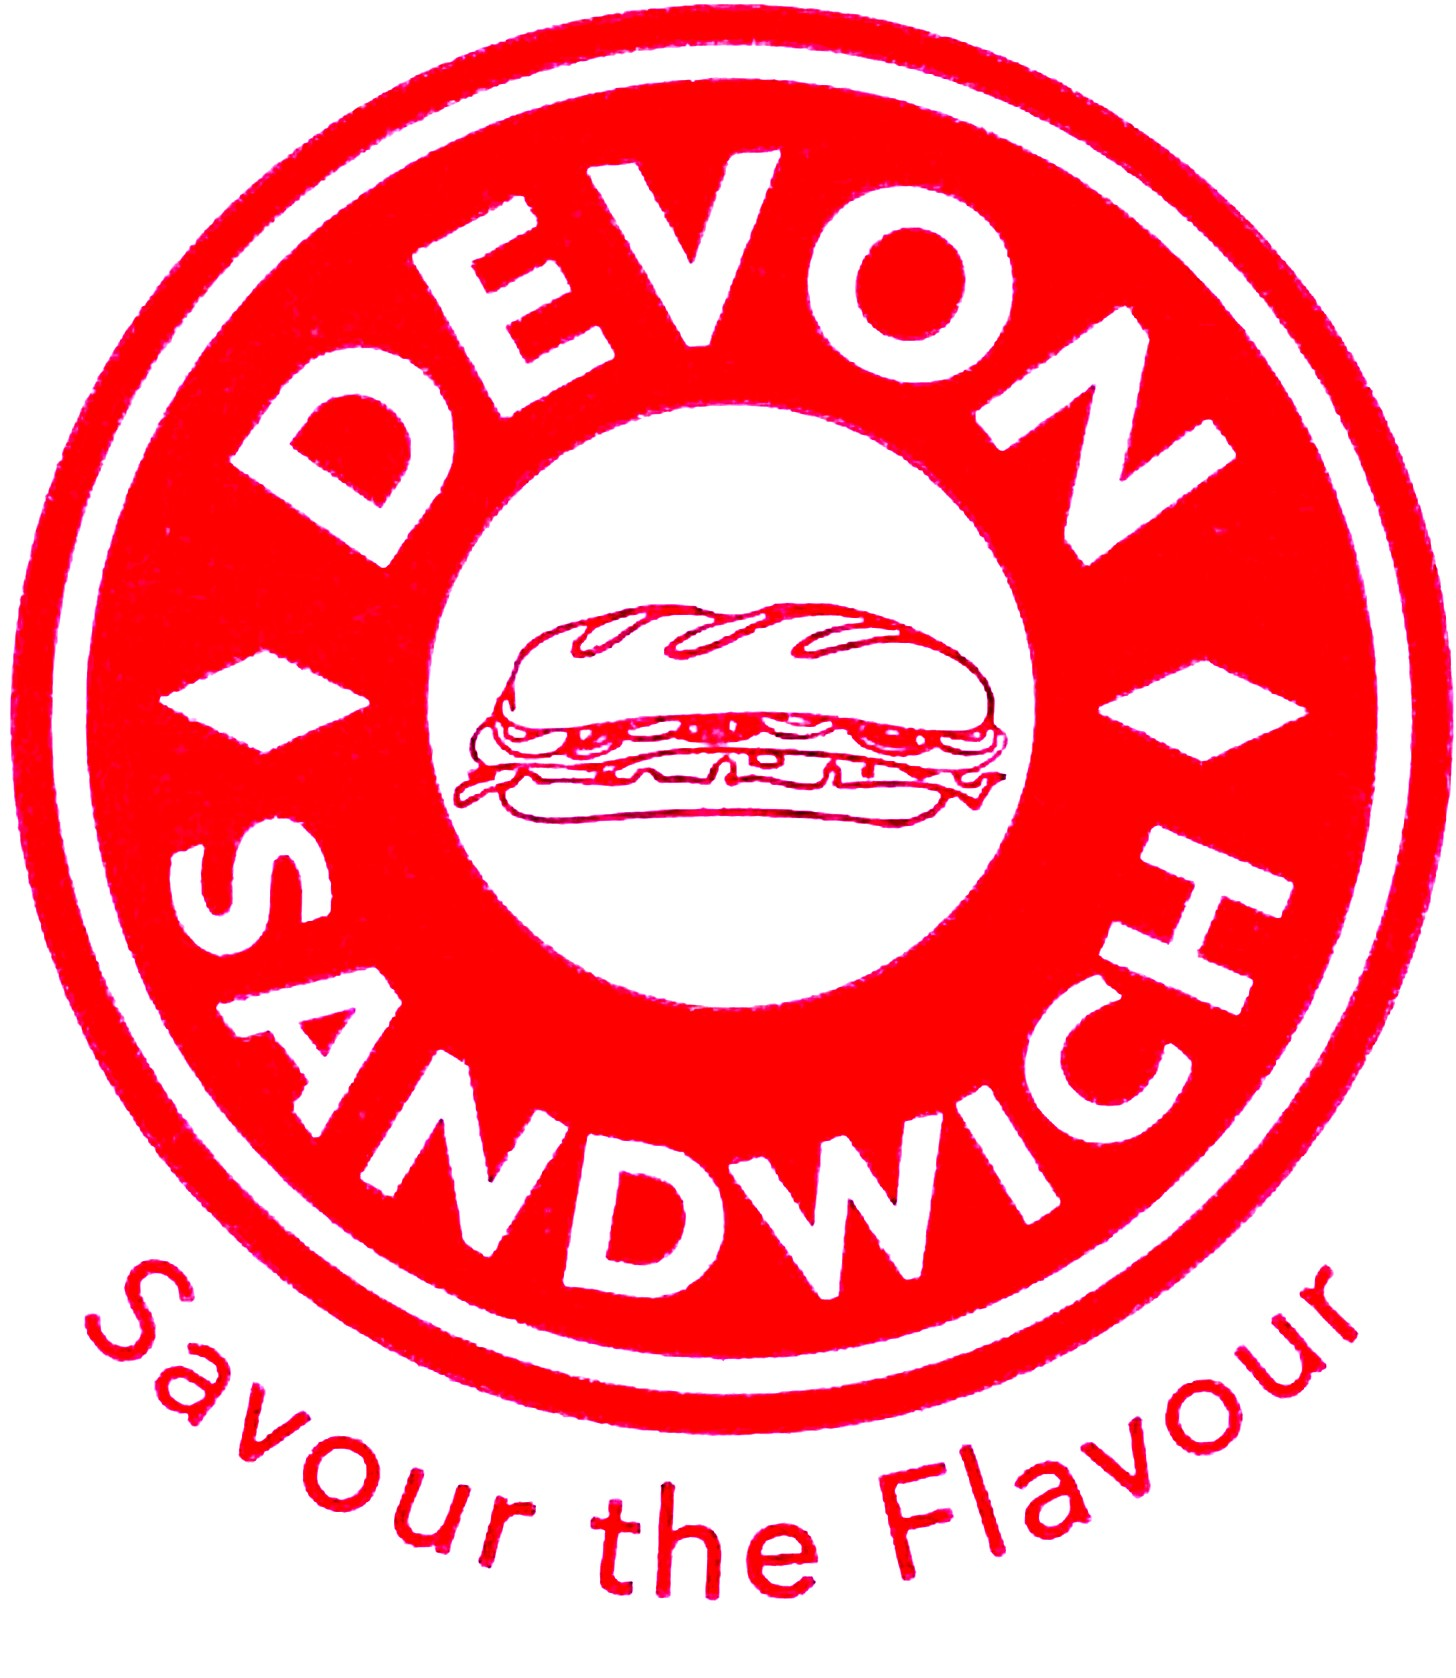 Devon Sandwich Co